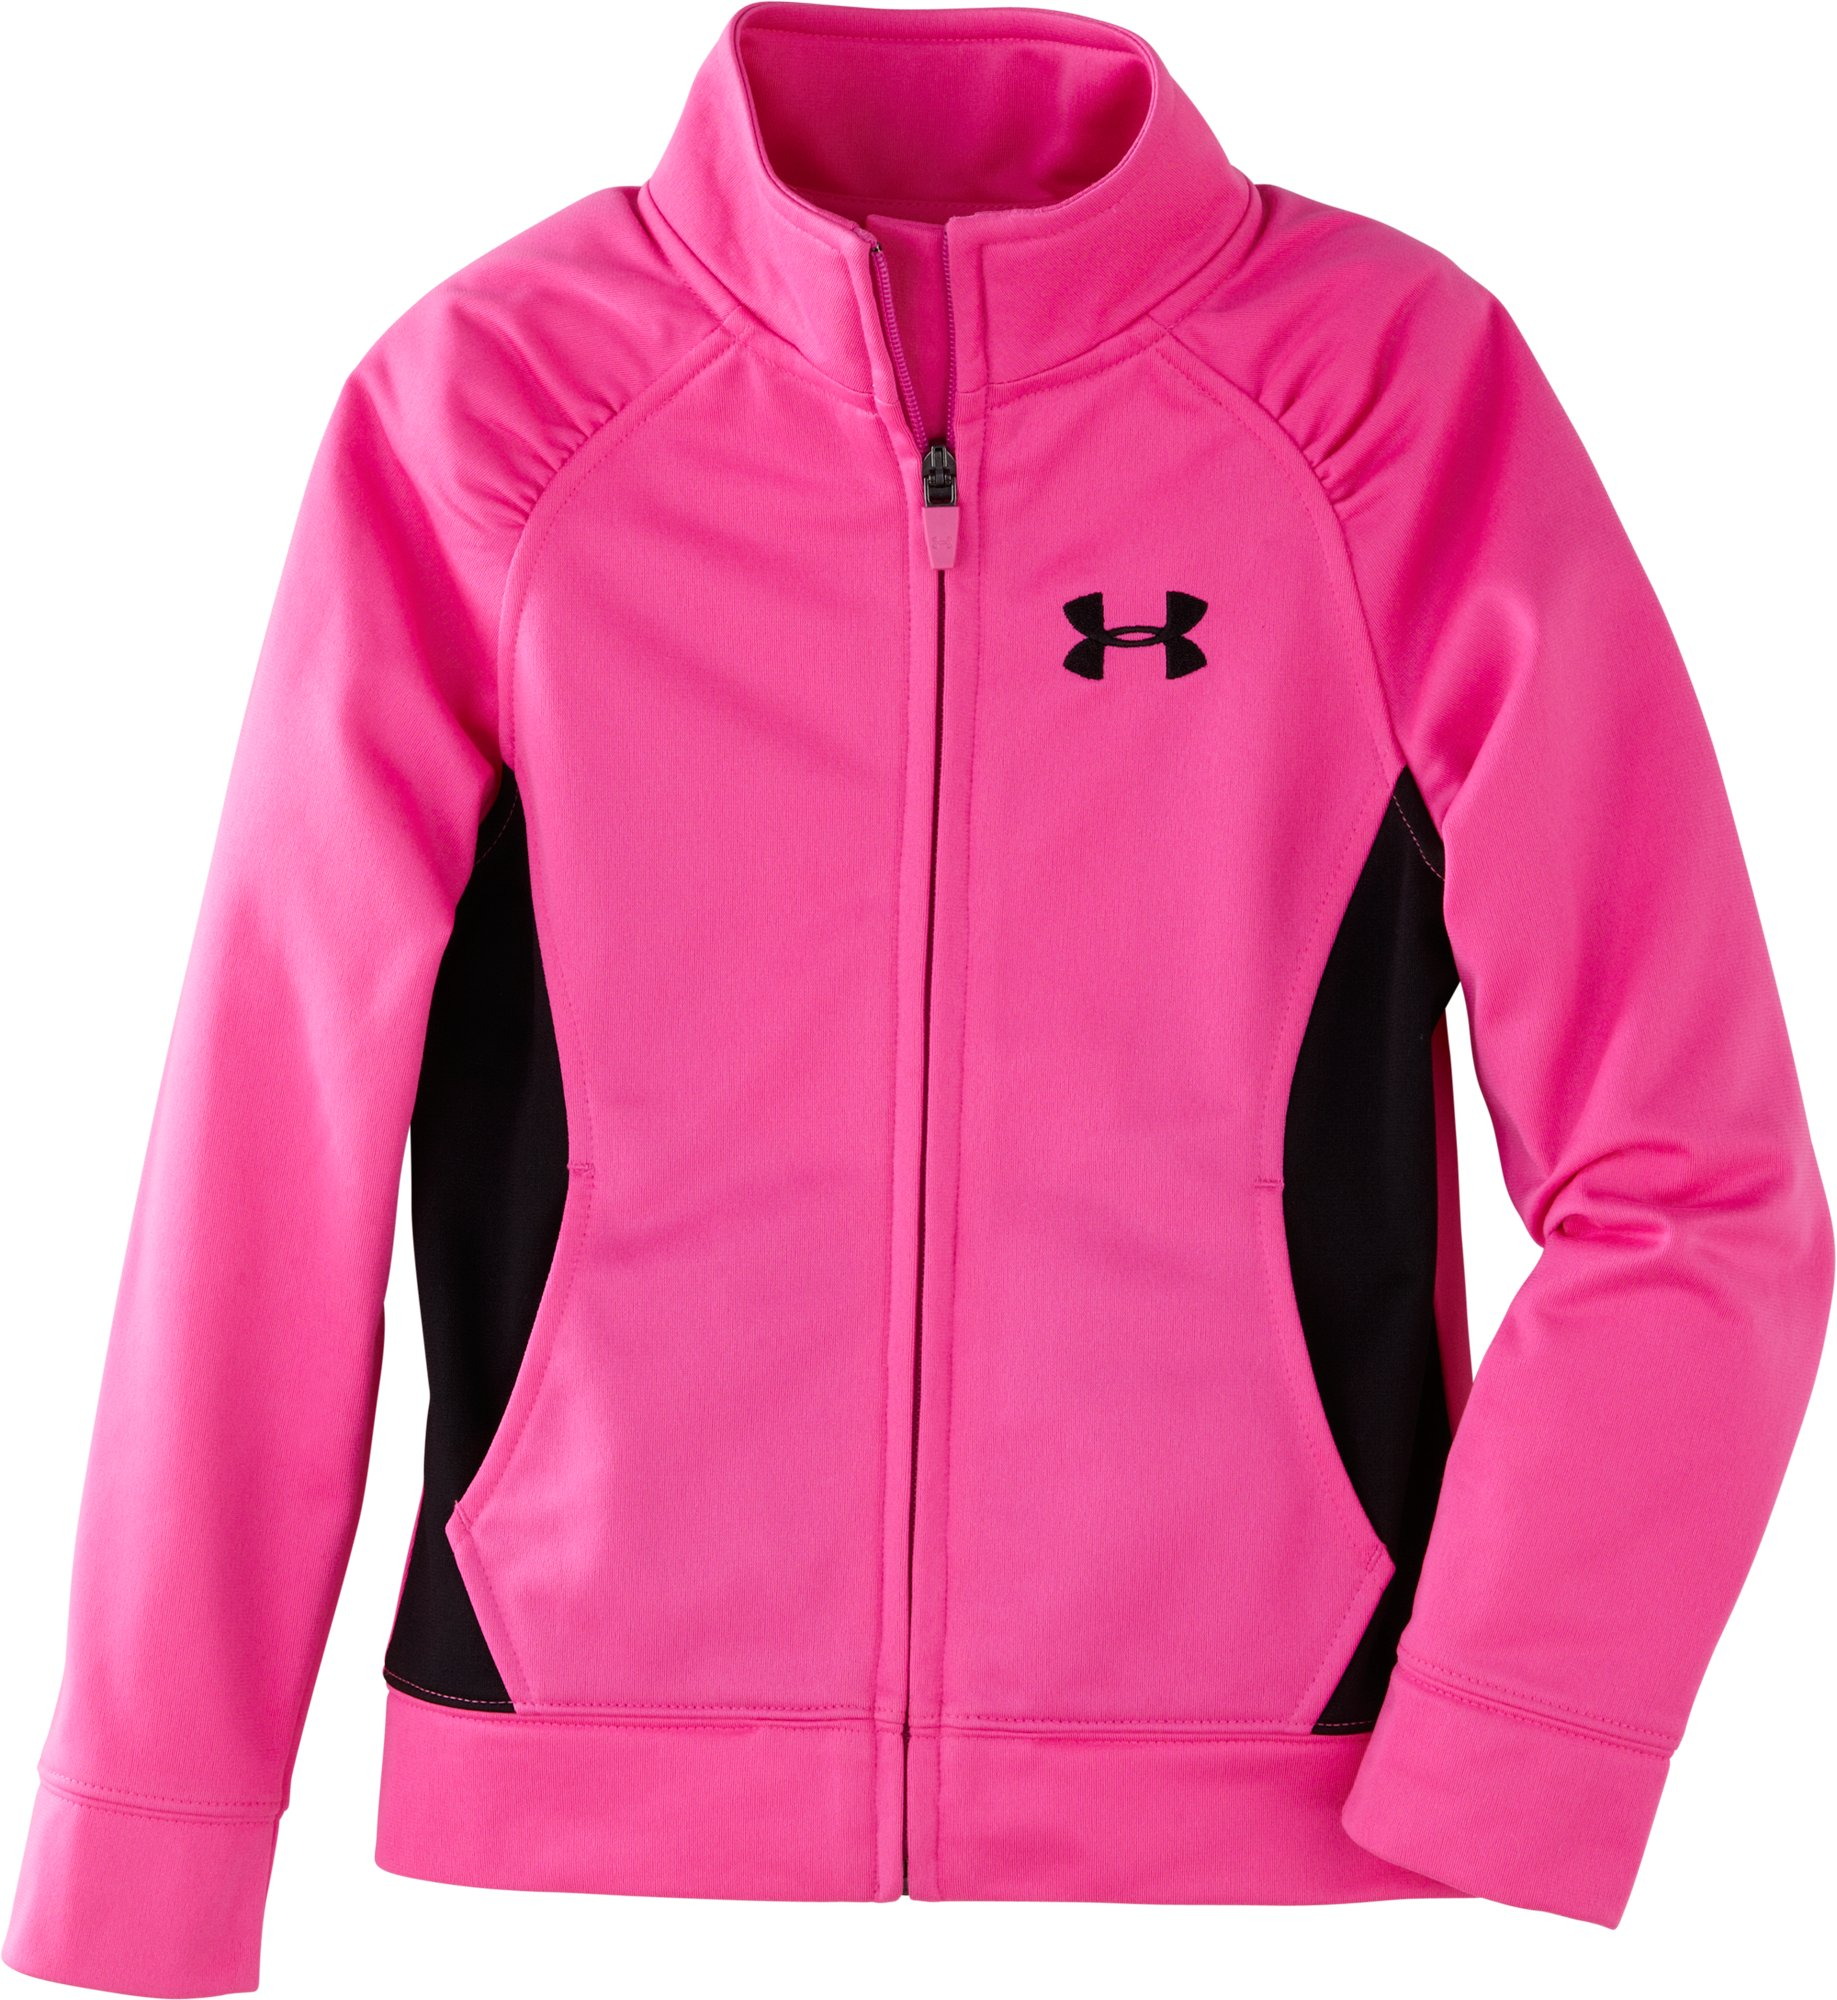 Girls' Infant UA Track Jacket, CHAOS